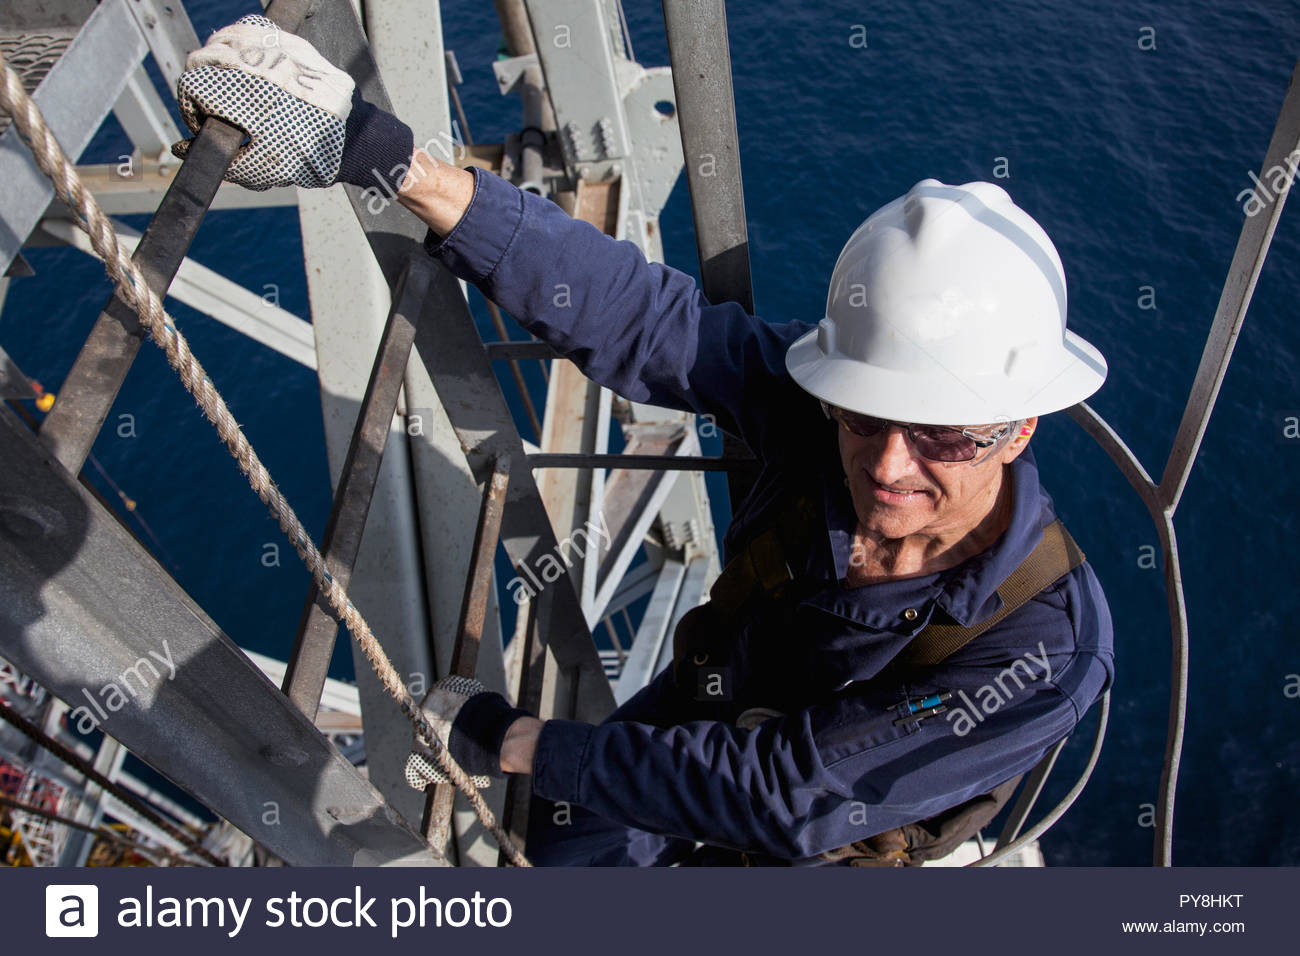 High angle view of worker on ladder of offshore oil platform - Stock Image